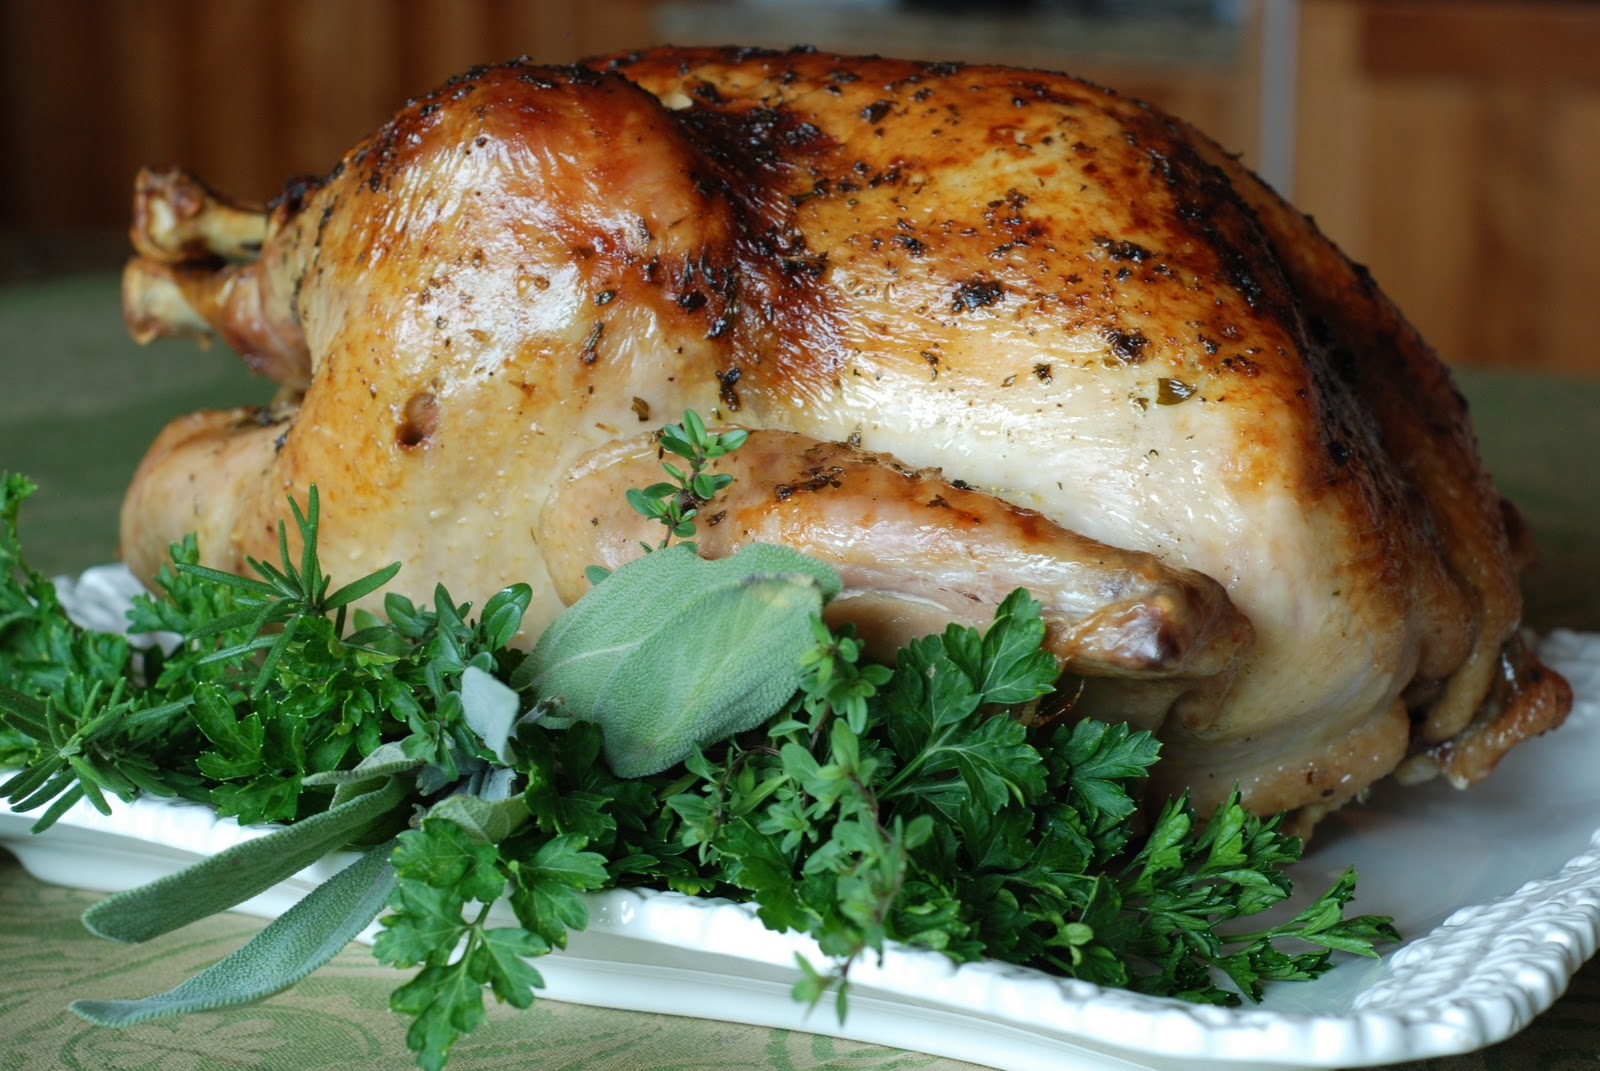 Roast Turkey with Apple Cider Gravy - Simply So Good